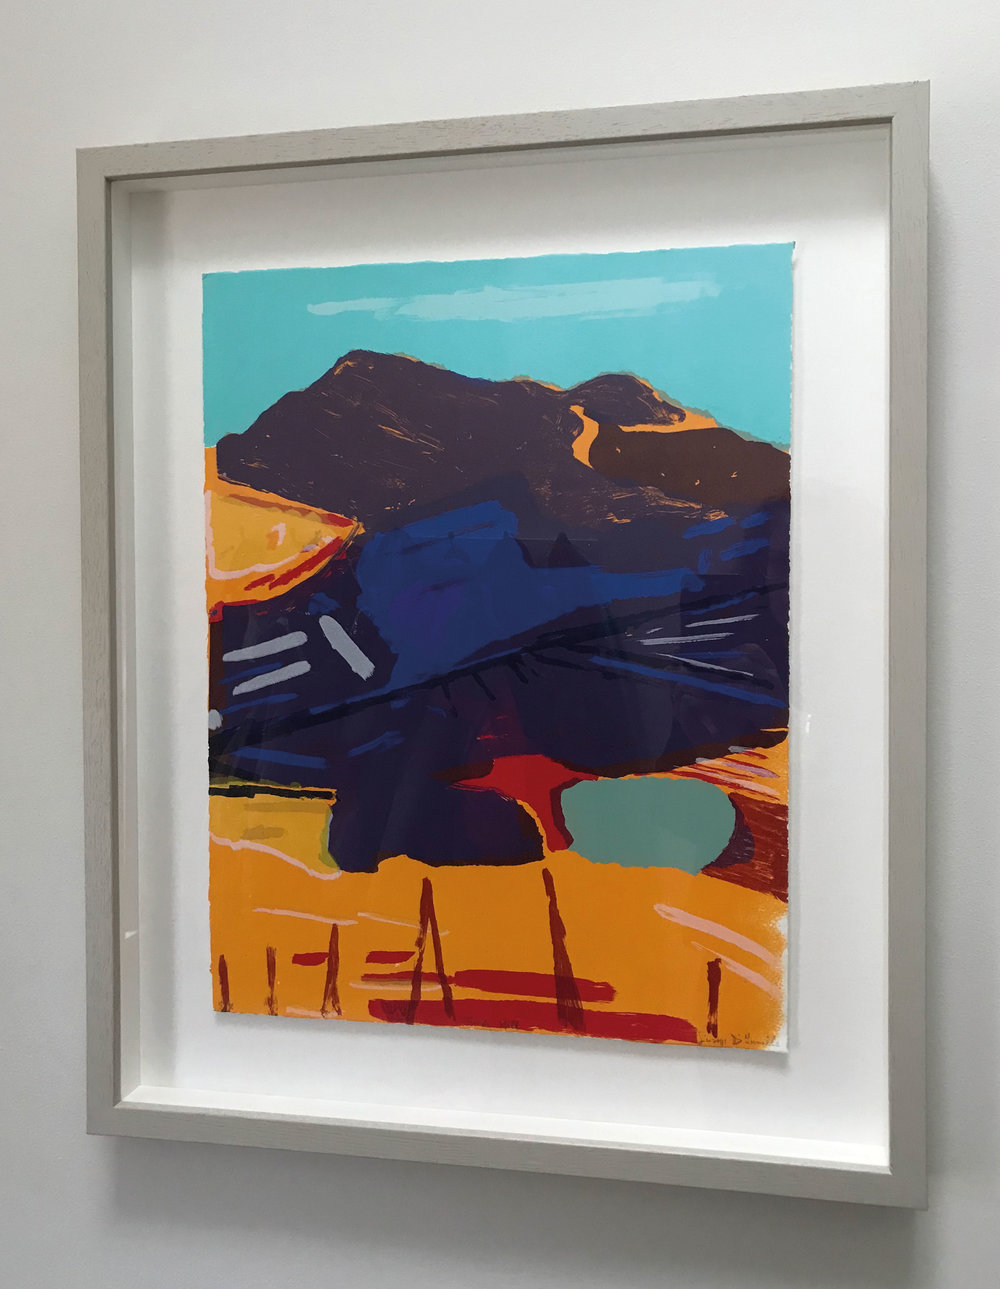 The second purchase I made for my collection was in 2009. A screen print by Giuseppe D'Innella, a colourist who produces bold, expressive abstracted landscapes. Such is his precise technique in terms of colour selection and practice, I subsequently bought another of his prints.   www.giuseppedinnella.co.uk